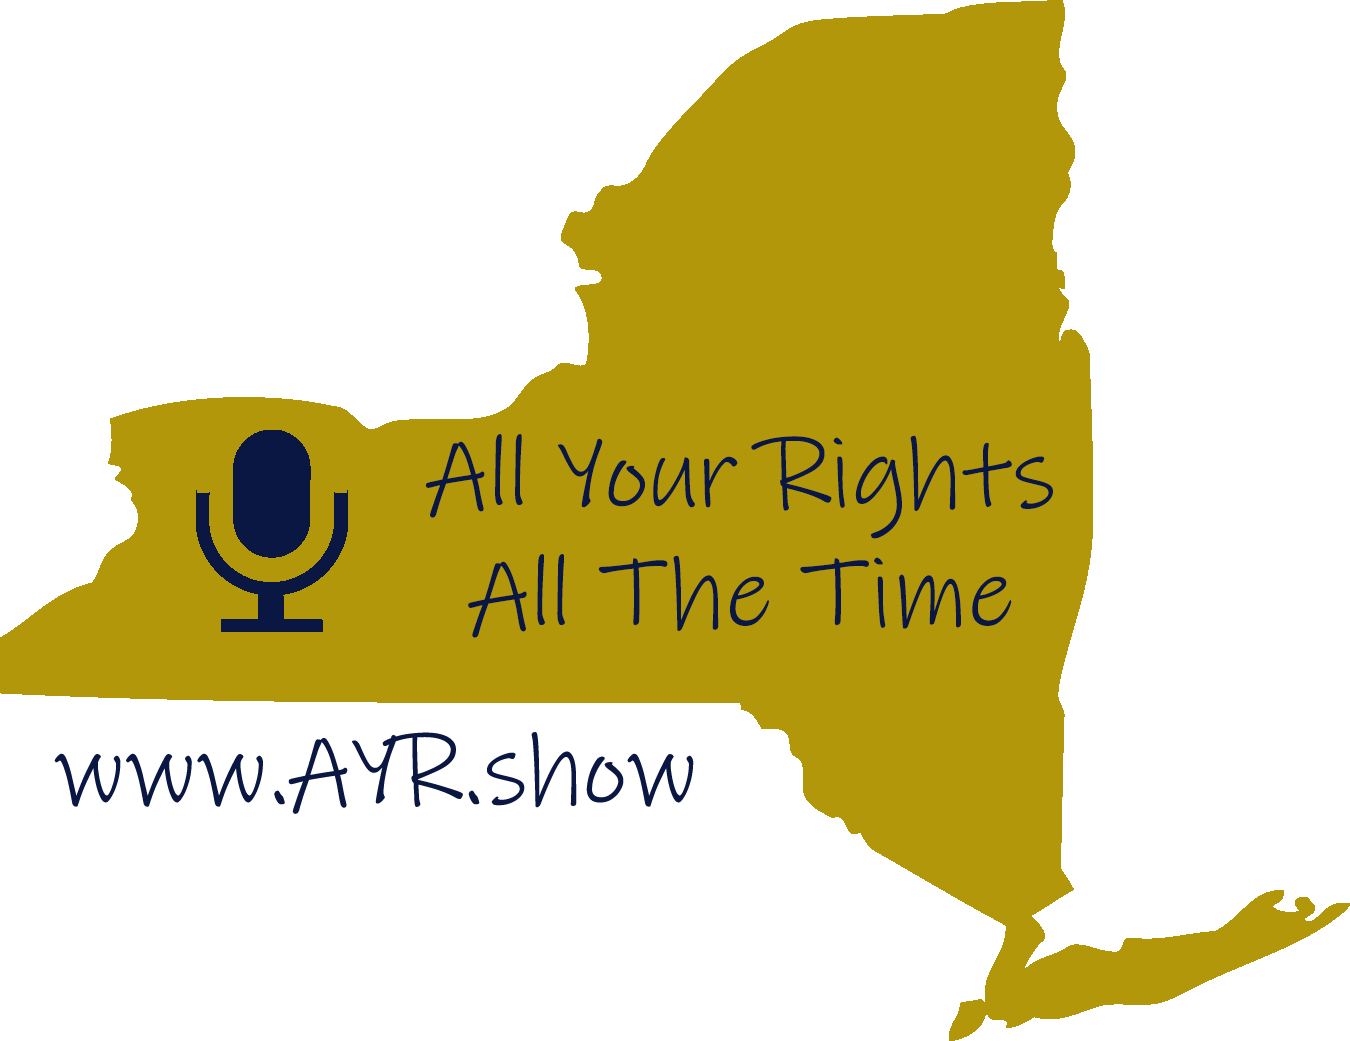 All Your Rights All The Time